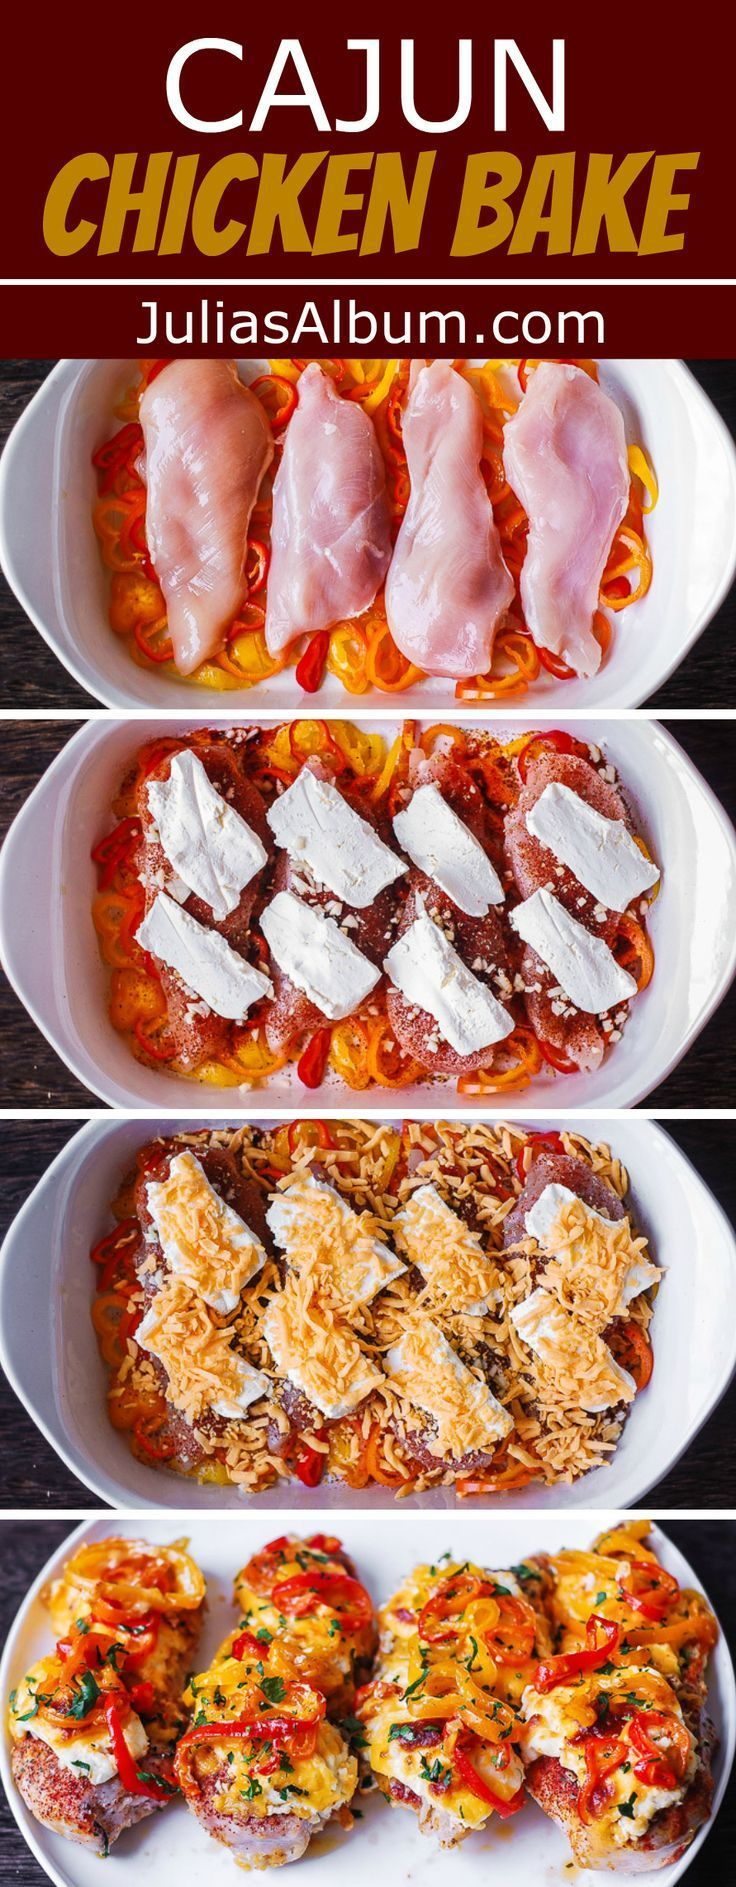 Cajun Chicken Bake with Bell Peppers, Cream Cheese, Cheddar Cajun Chicken Bake with Bell Peppers, Cream Cheese, Cheddar